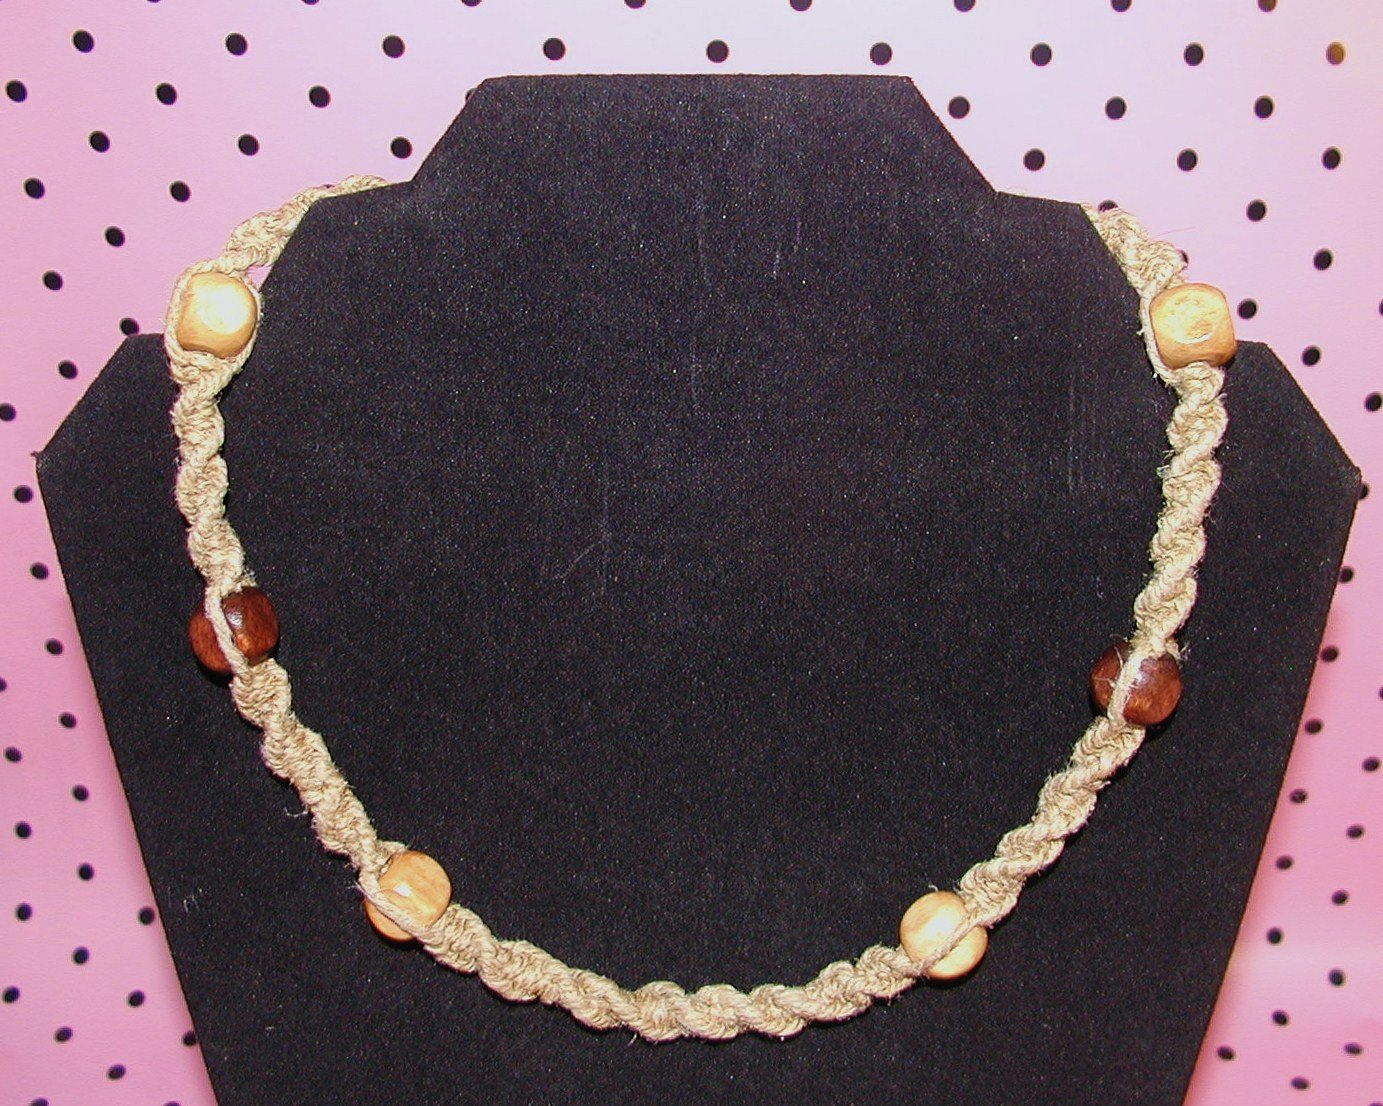 Spiral Hemp Necklace with Wooden Beads